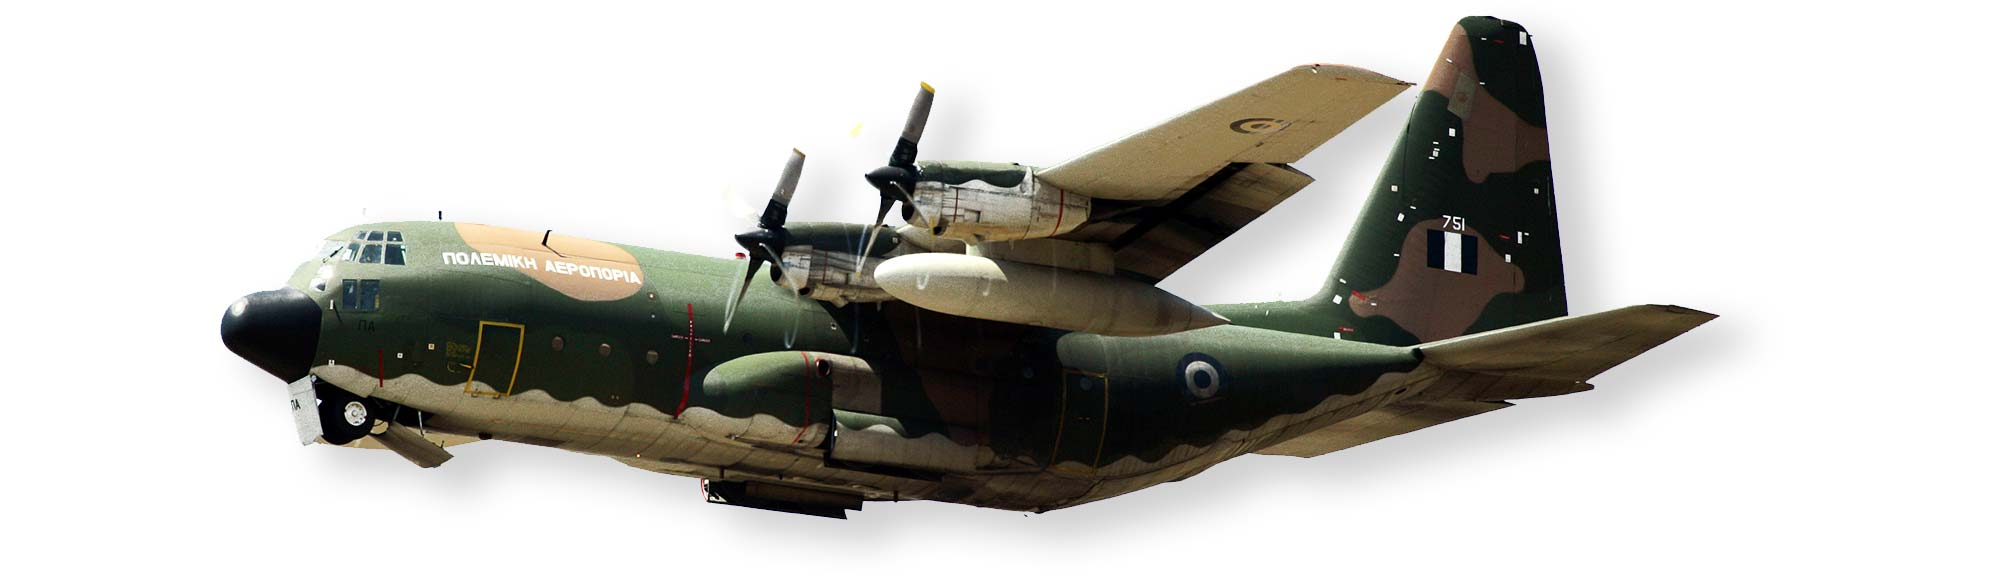 medium resolution of the t56 is a single shaft modular design turboprop engine the gearbox has two stages of gear reduction features a propeller brake and is connected to